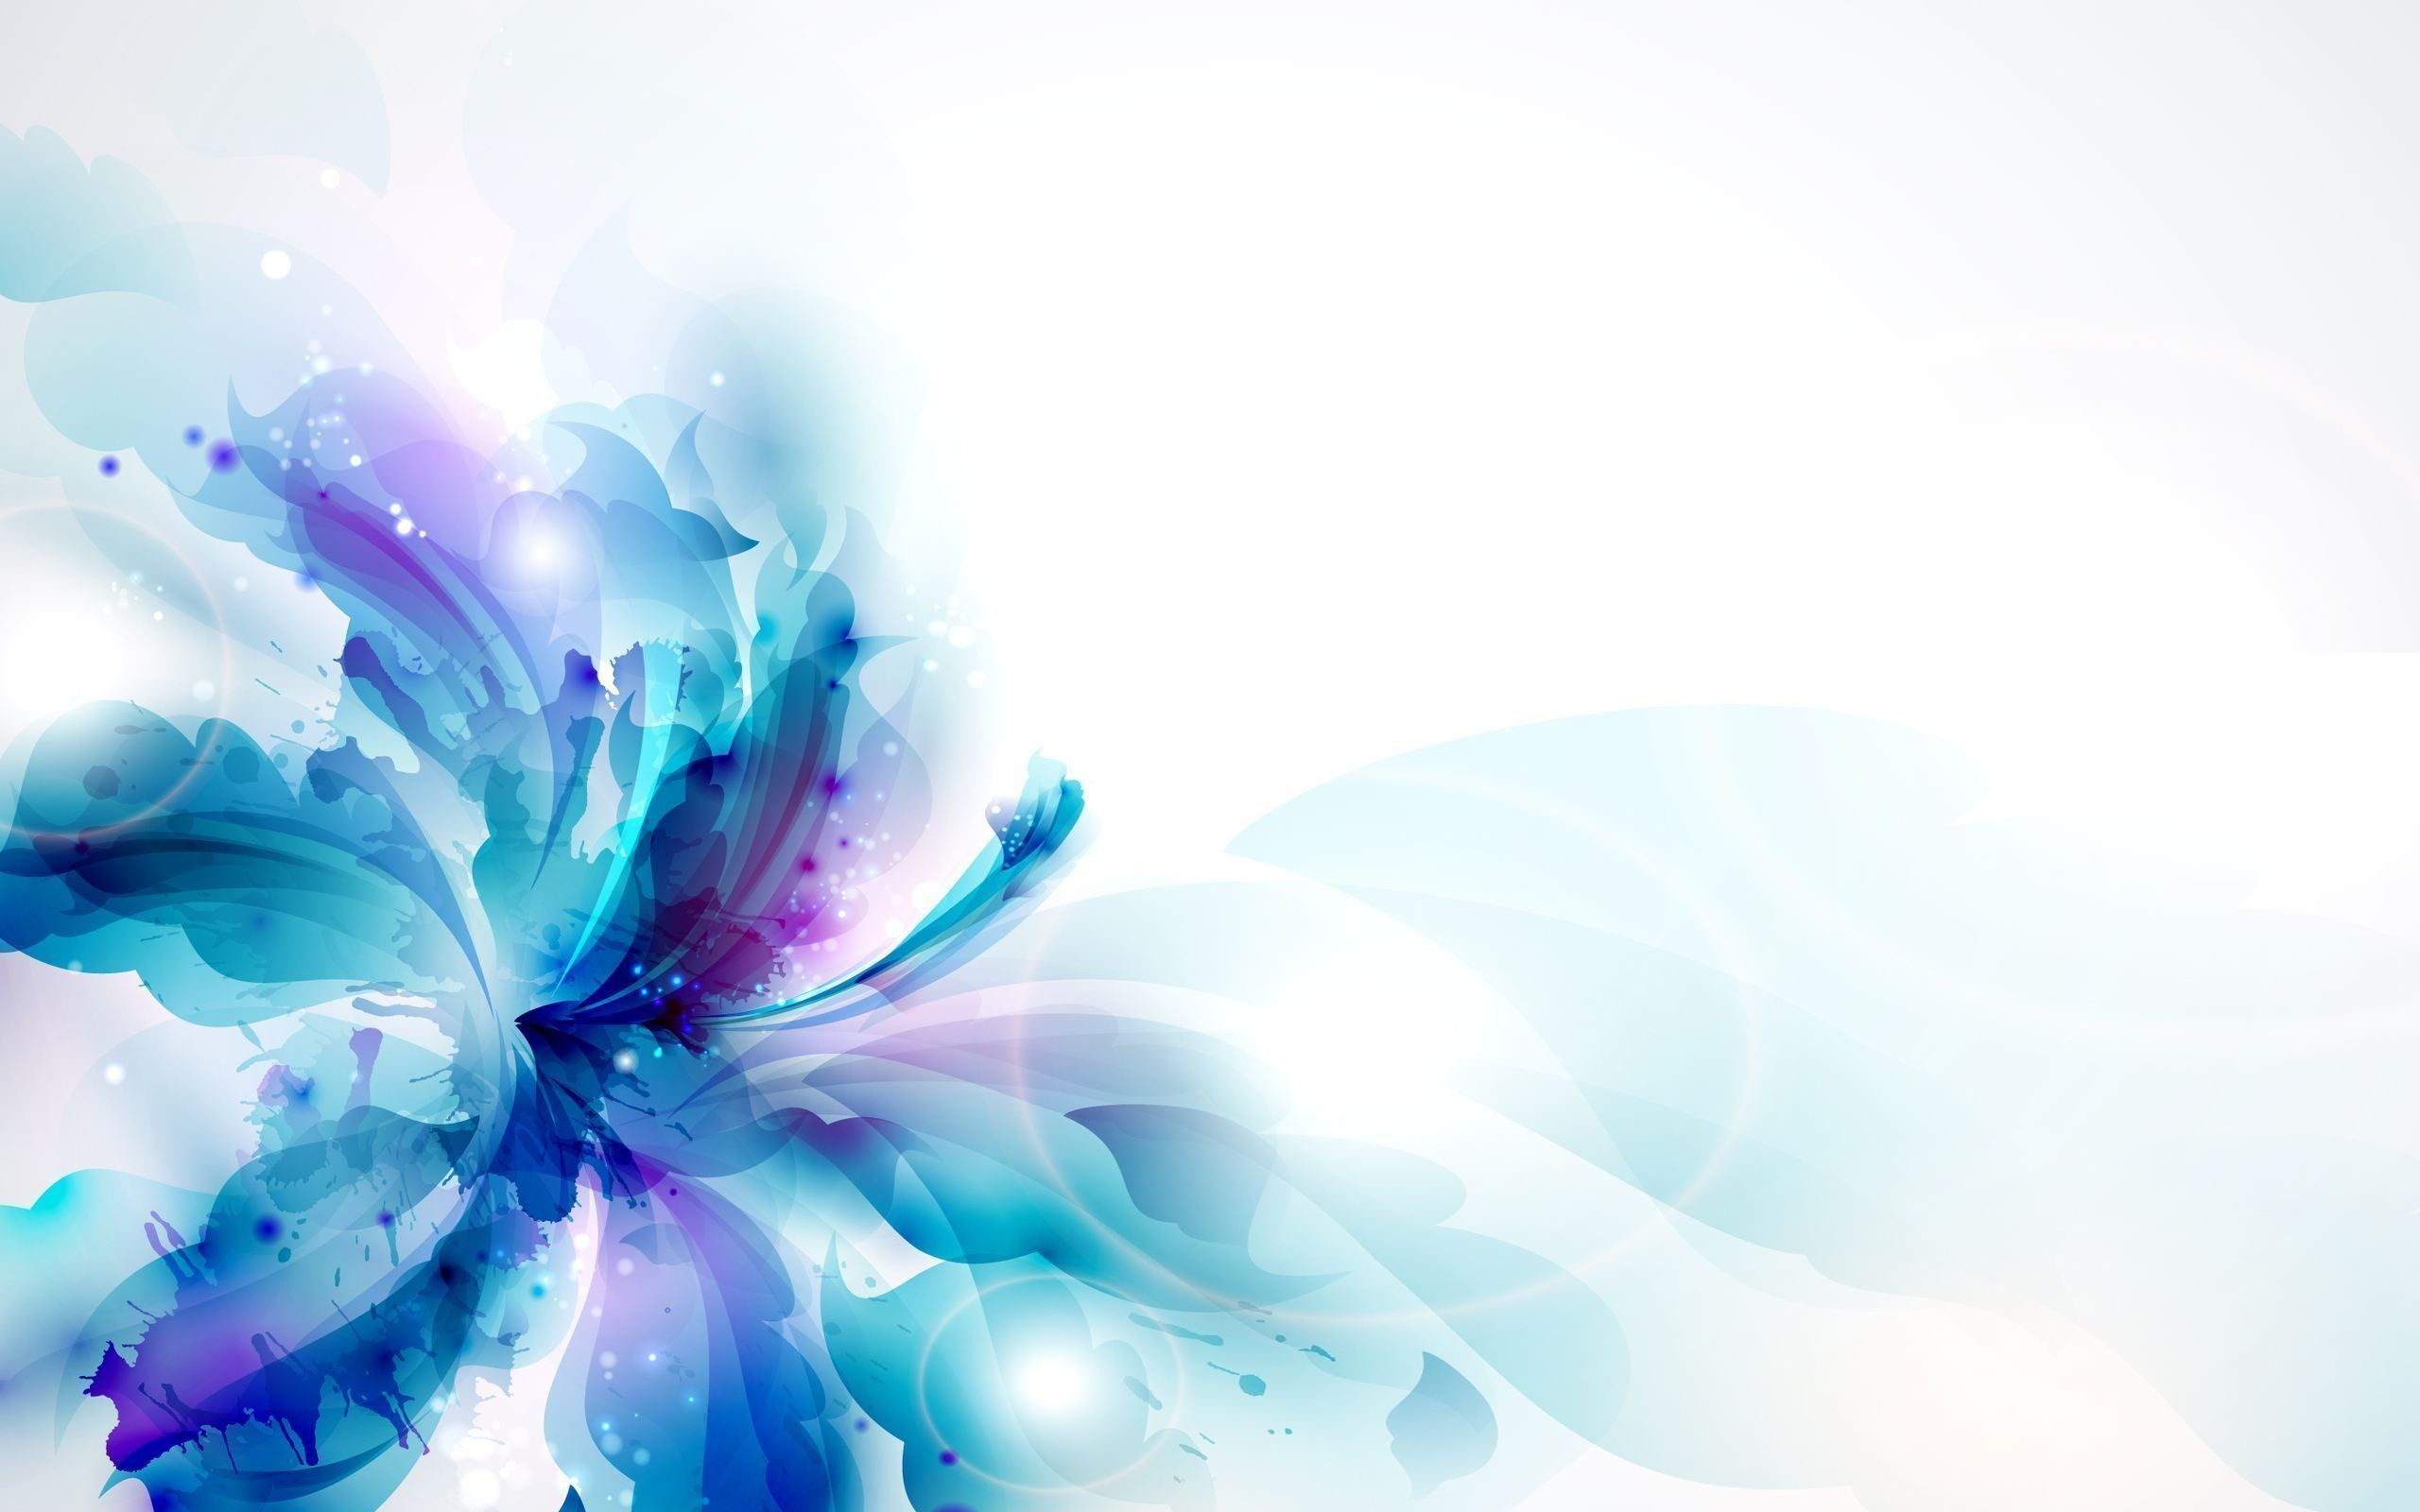 Abstract Design Flower Wallpaper: Blue Abstract Flowers Widescreen 2 HD Wallpapers